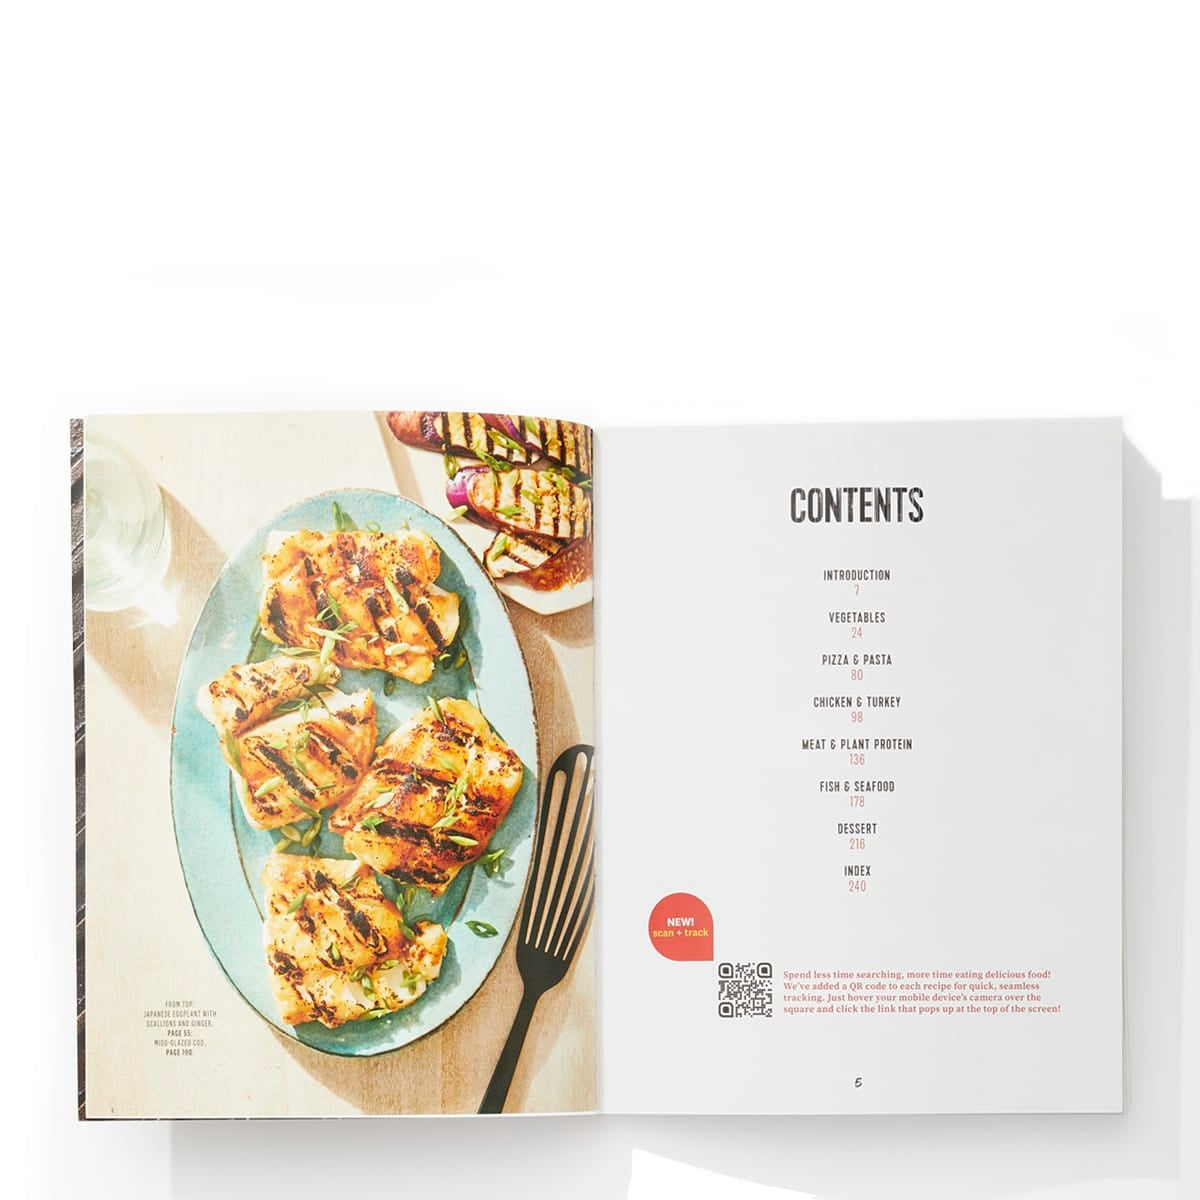 Year Round Grilling Cookbook - table of contents